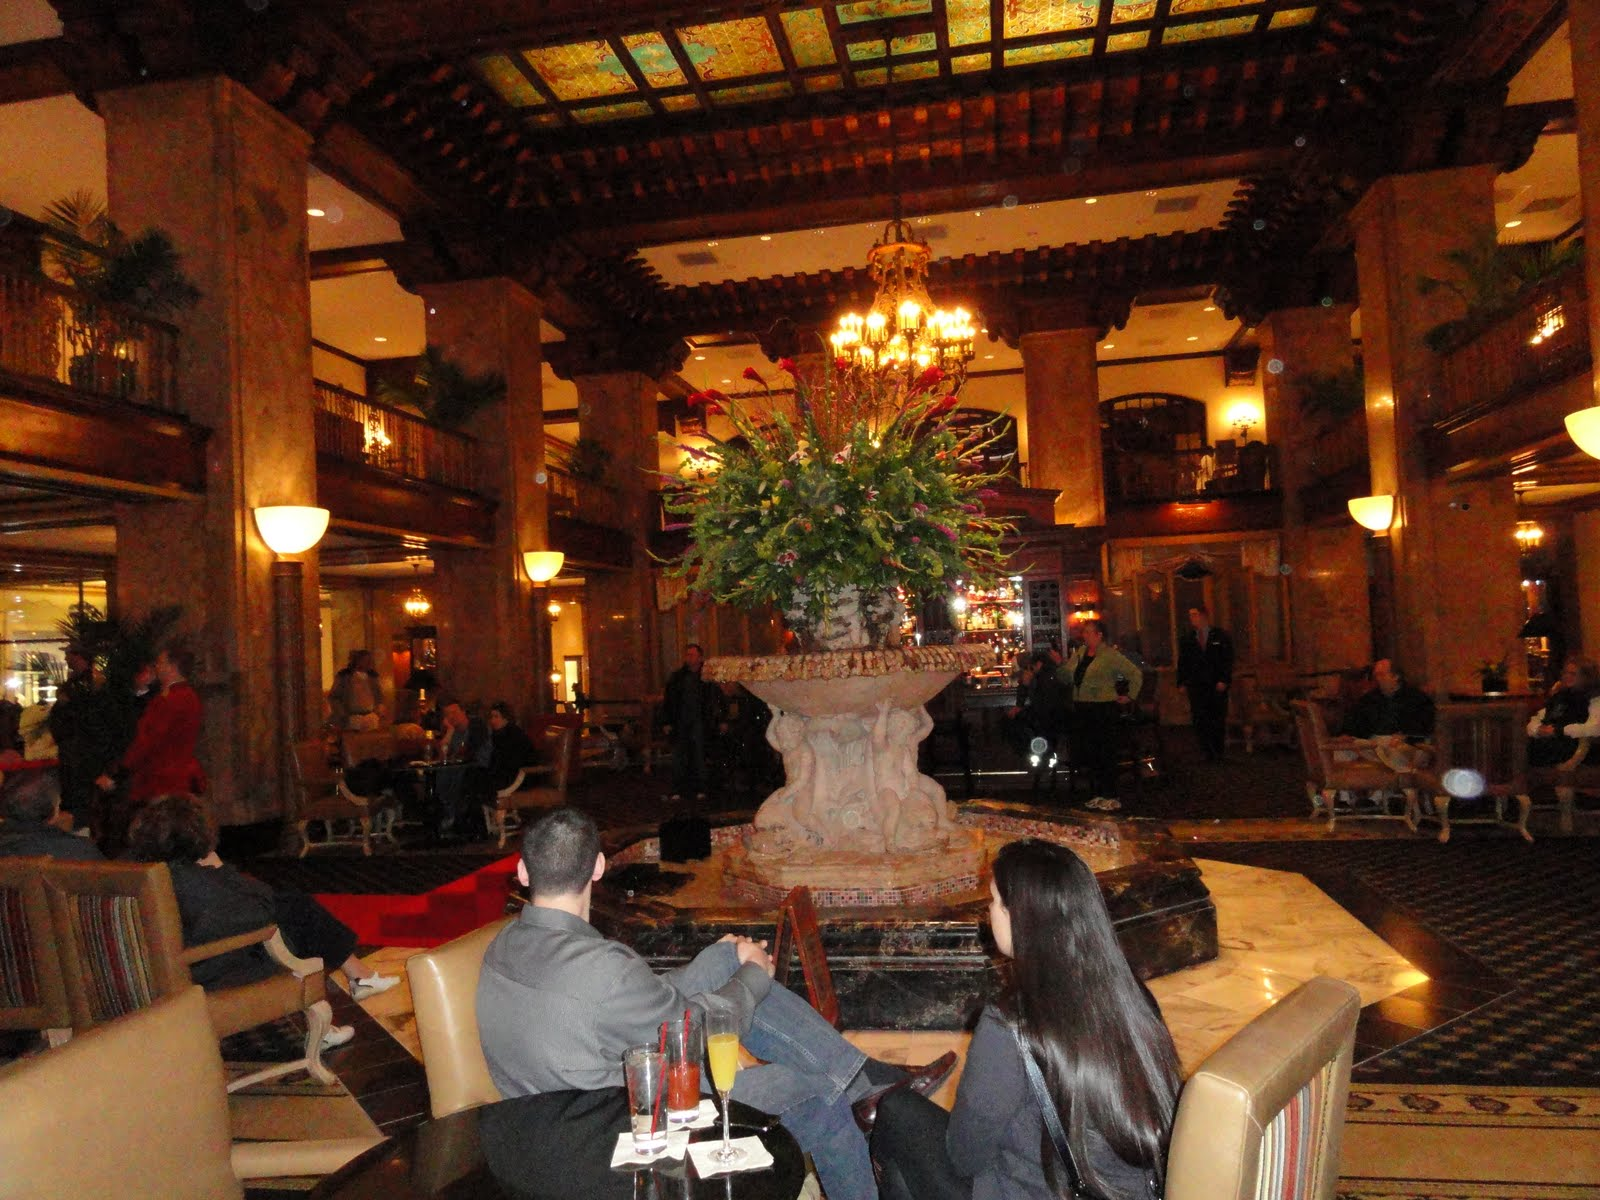 On the road memphis peabody hotel for Luxury hotels in memphis tn